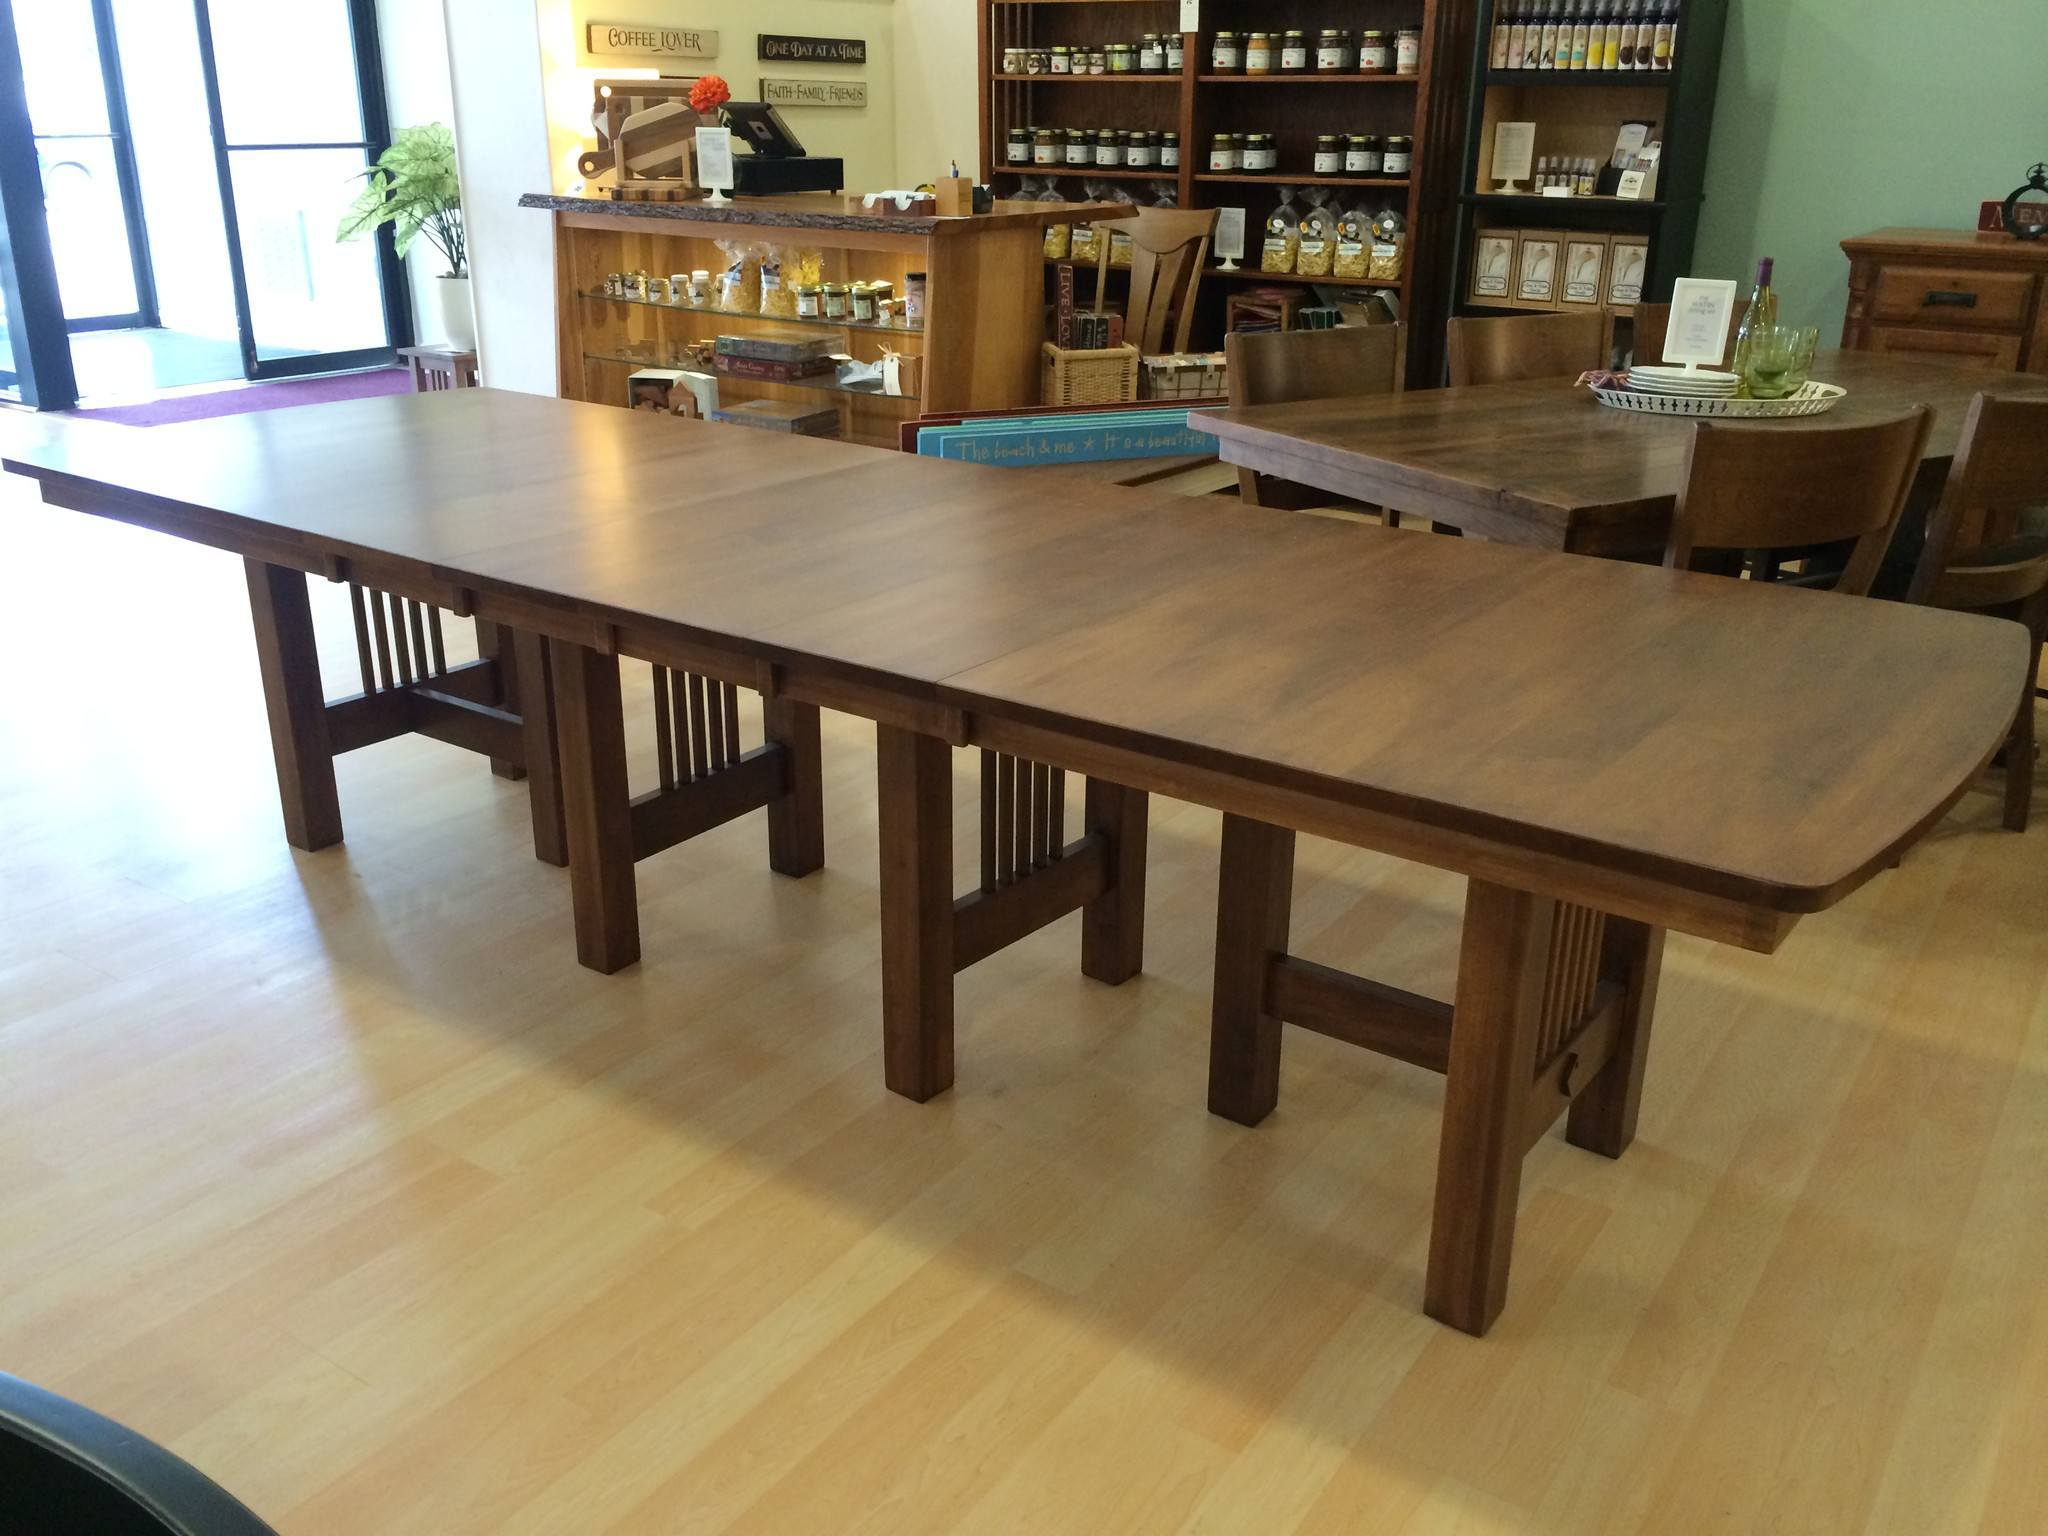 Dining Extension Table Hartford Trestle Extension Table Amish Dining Tables Amish Tables